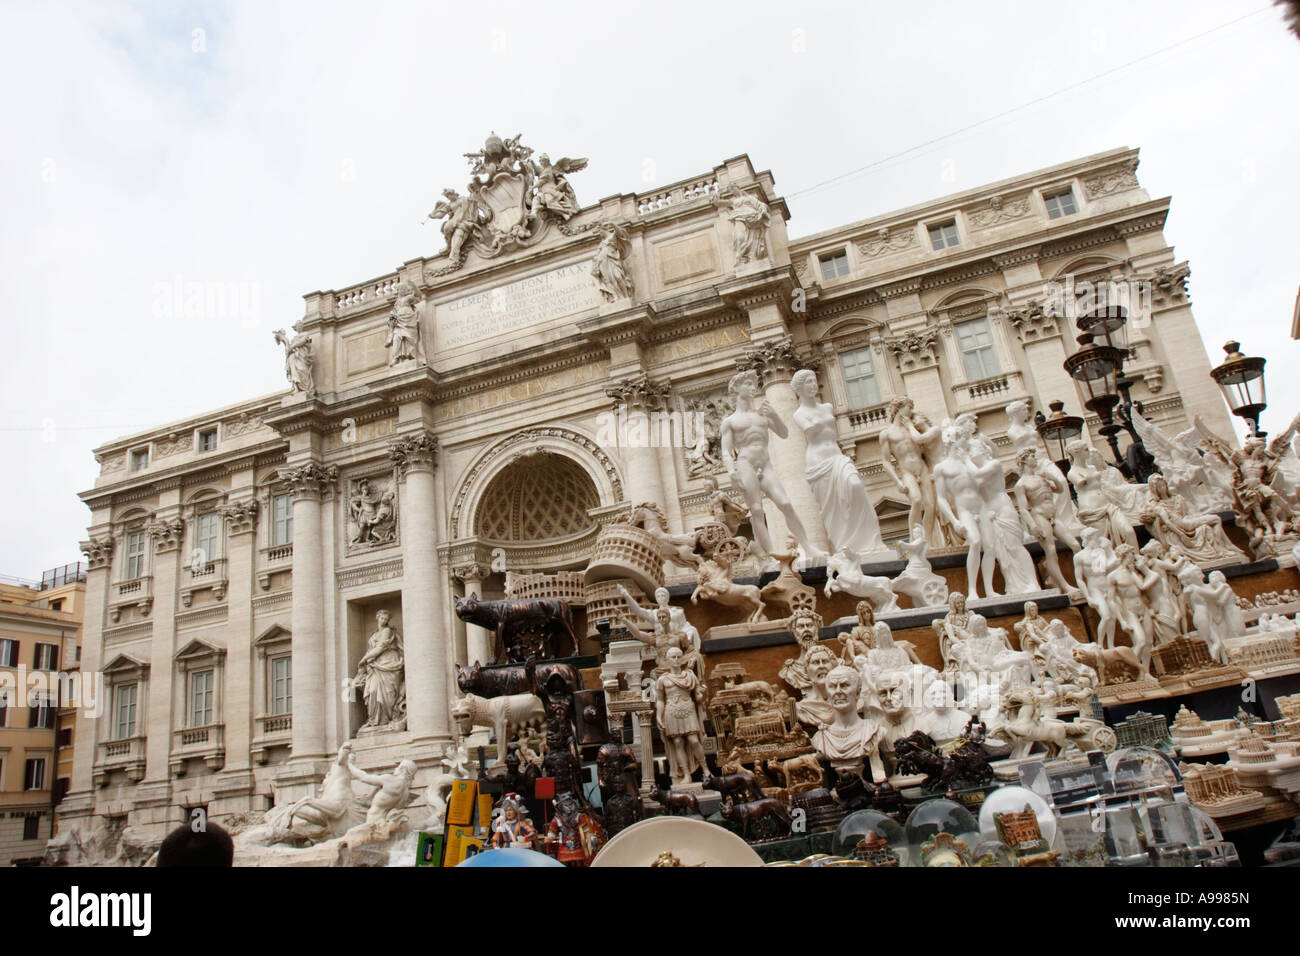 The Trevi Fountain viewed over a souvenir stall in Rome, Italy Stock Photo